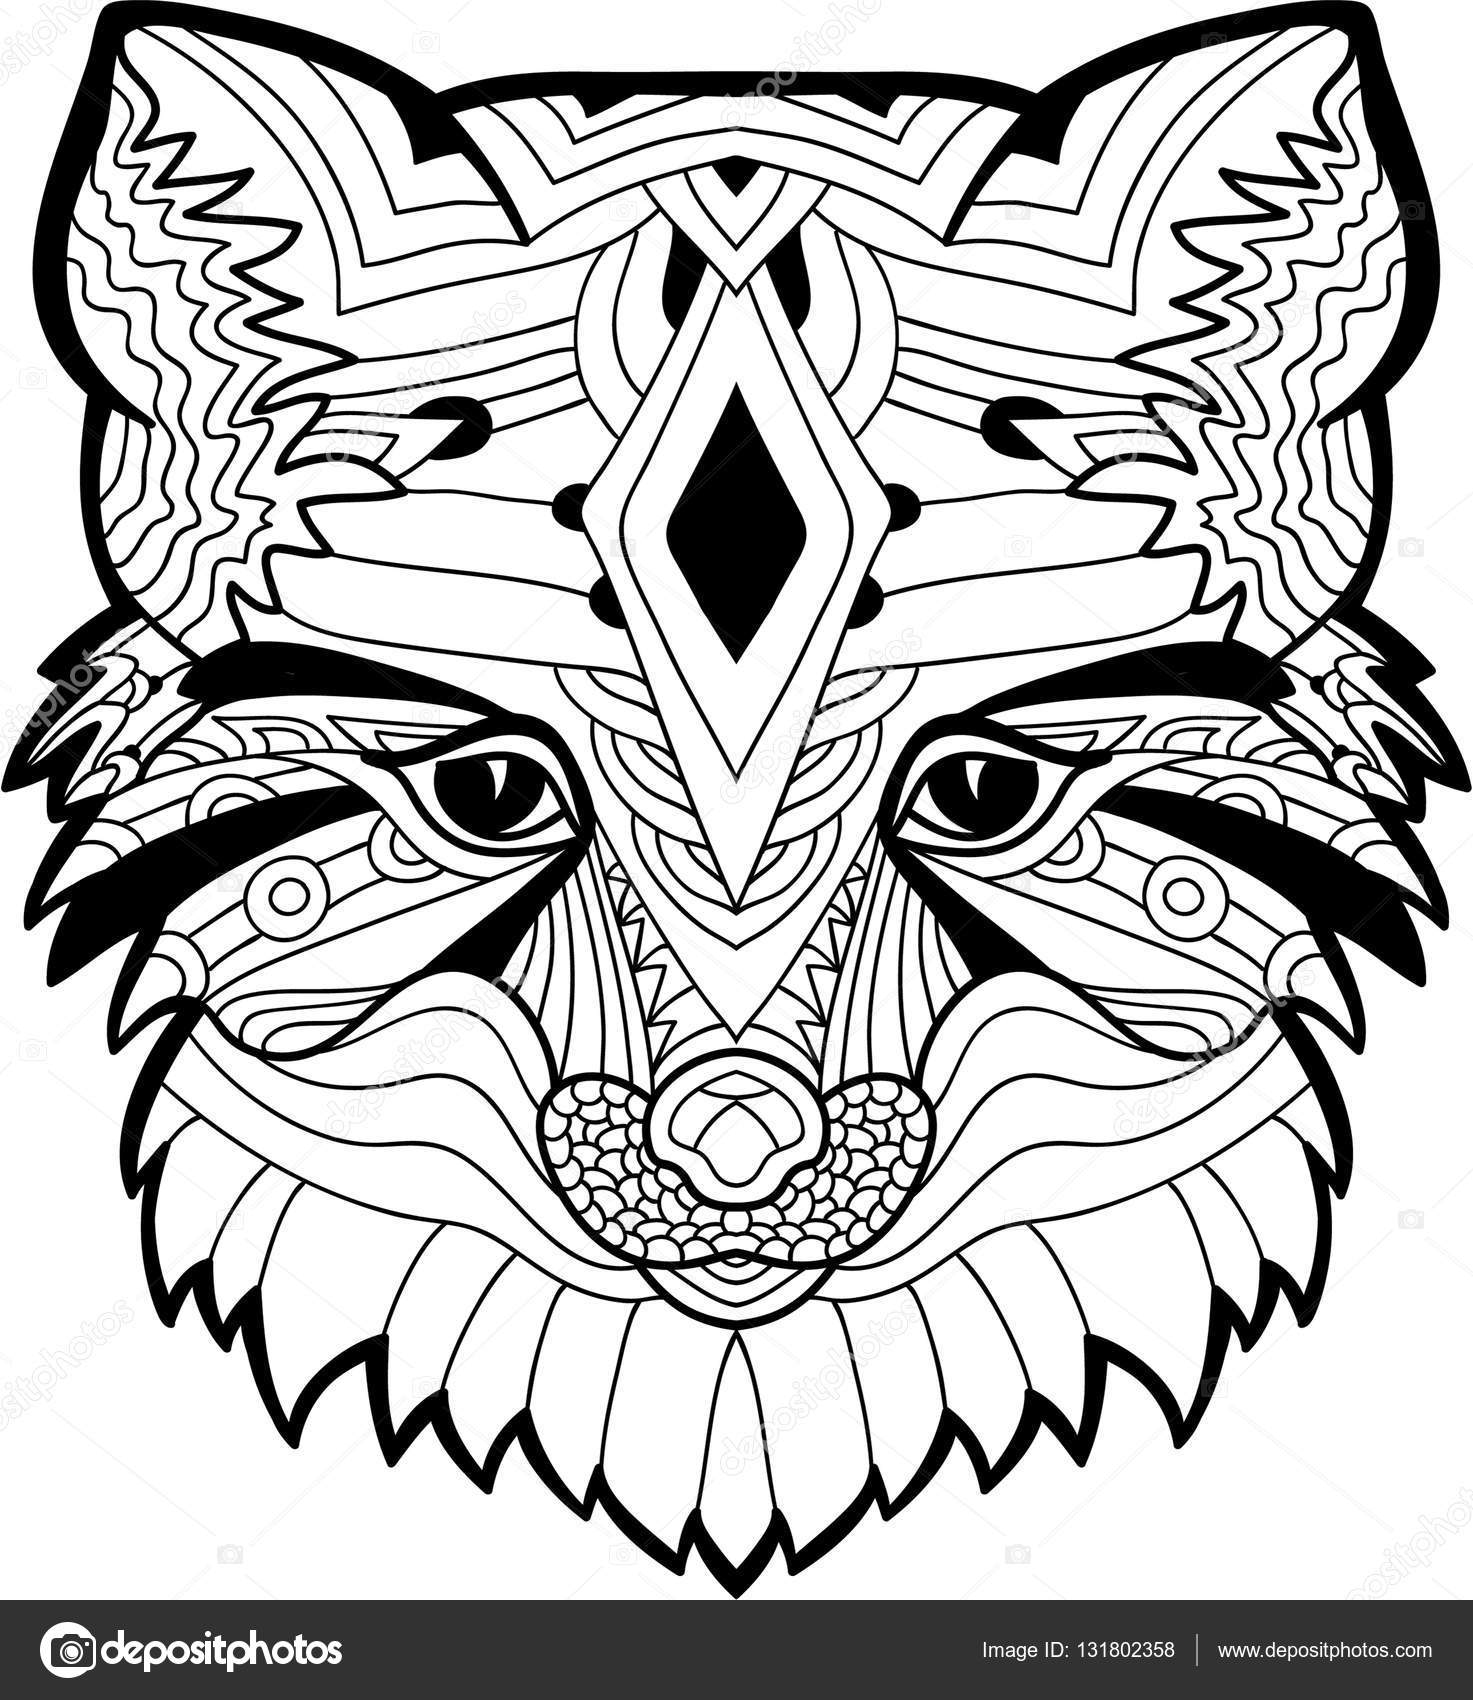 1473x1700 The Fox Head Pattern. Monochrome Ink Drawing Stock Vector